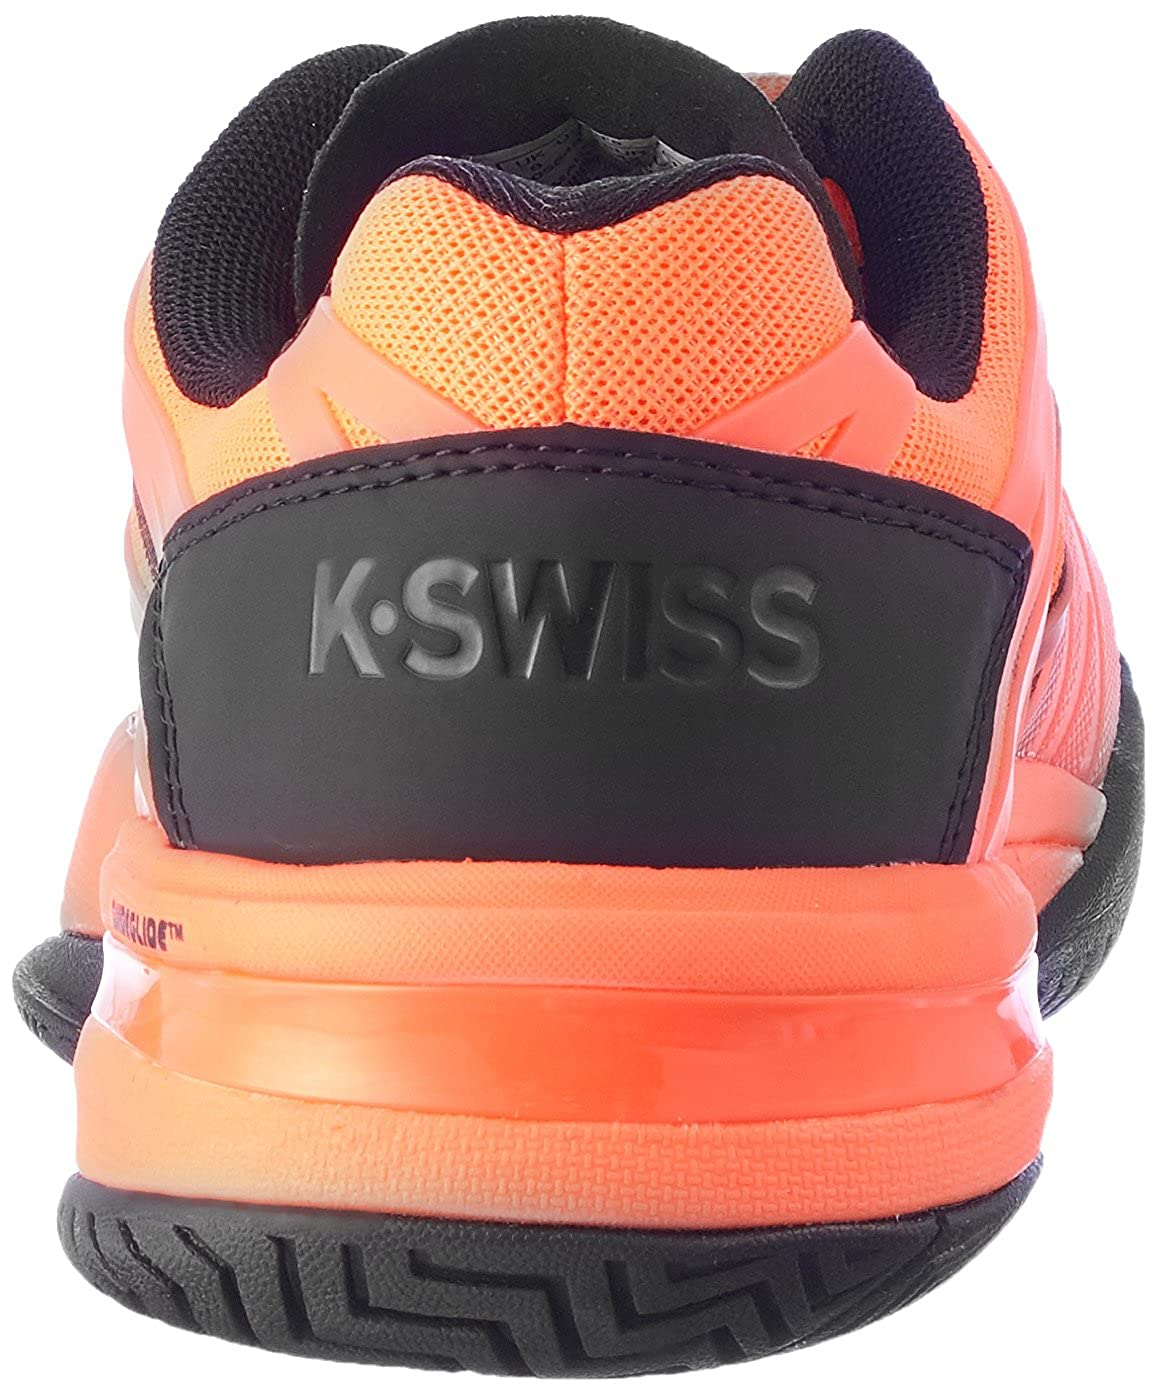 K-Swiss Performance Ultrashot, Zapatillas de Tenis para Hombre: Amazon.es: Zapatos y complementos